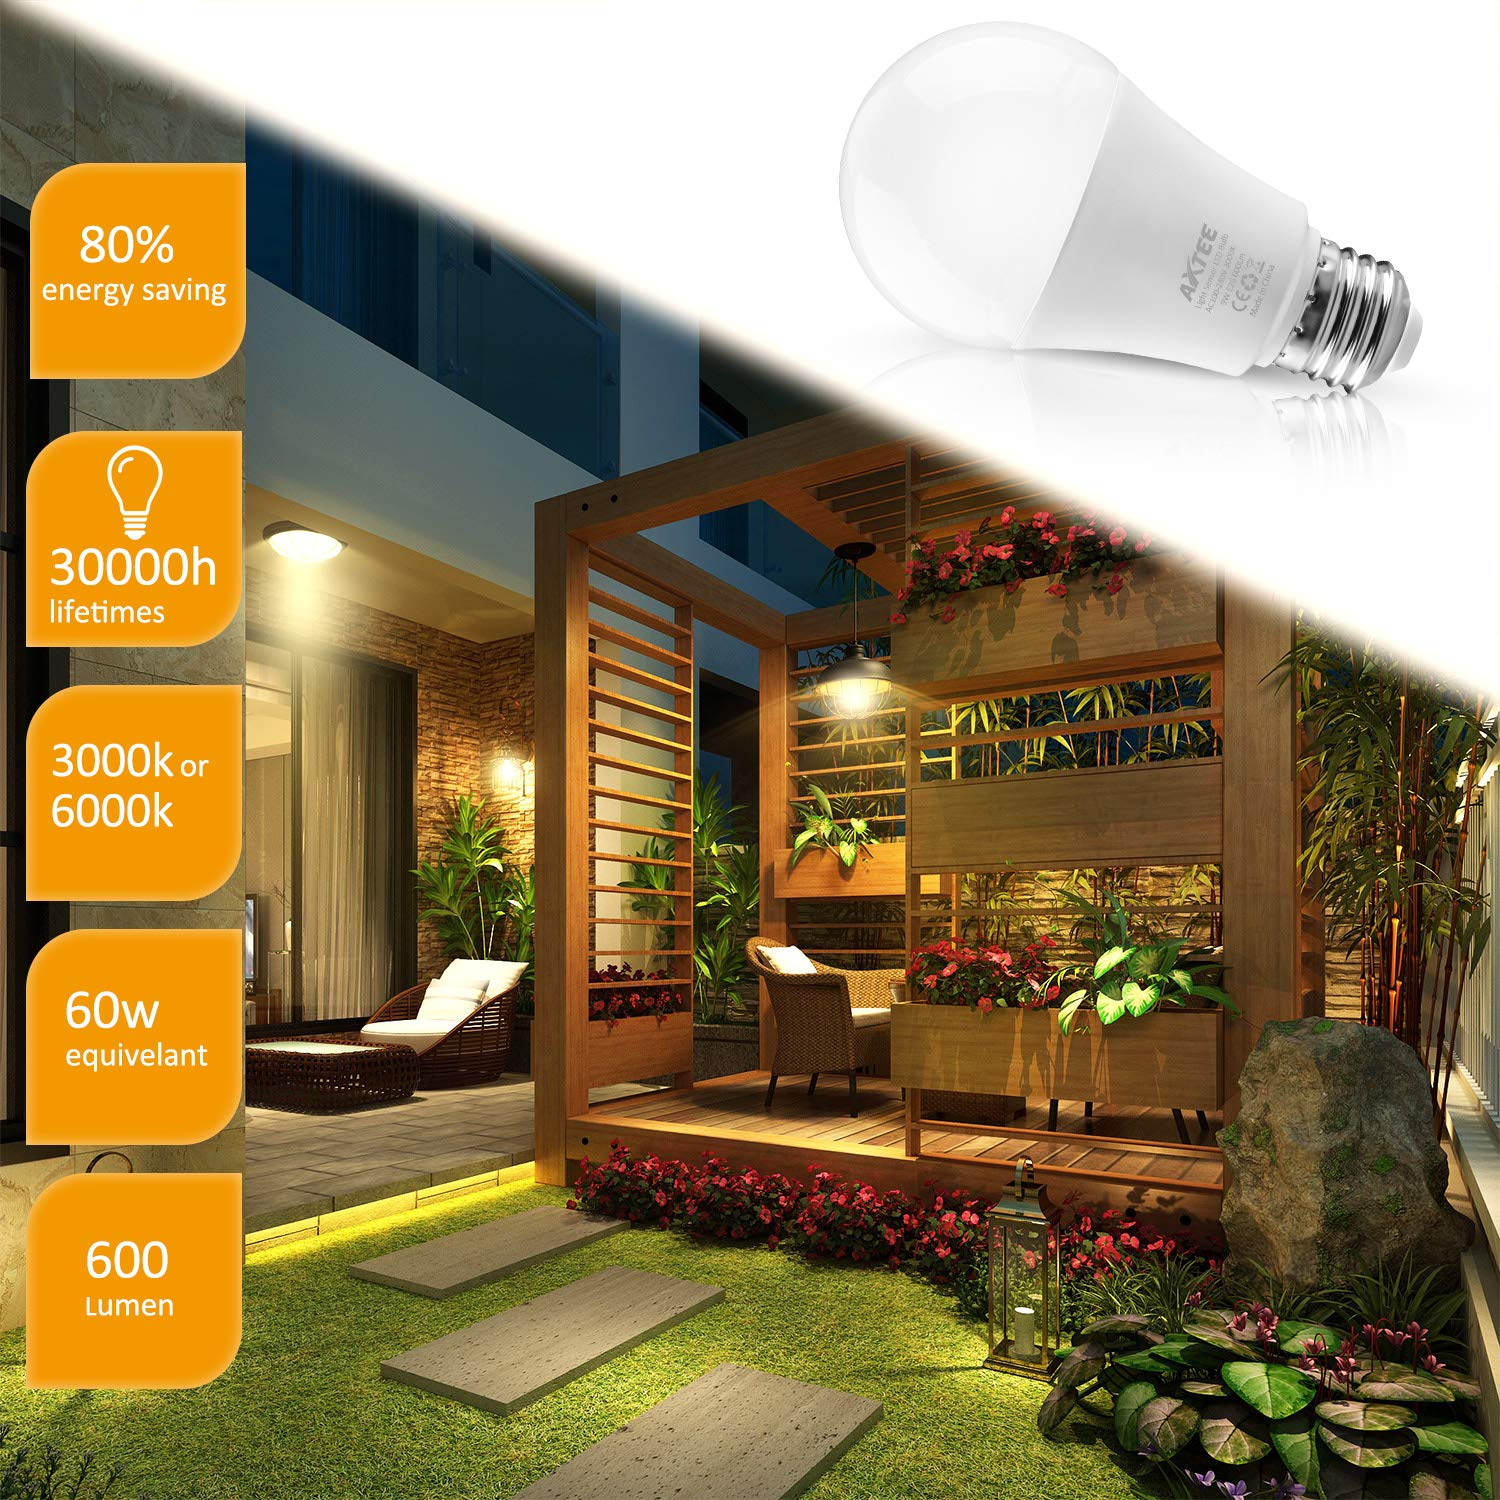 Smart Light Bulb Dusk to Dawn Sensor Led Light Bulbs Indoor/Outdoor E26 Base Socket Auto On/Off Lighting Lamp 9W (3000K, 2 Pack)